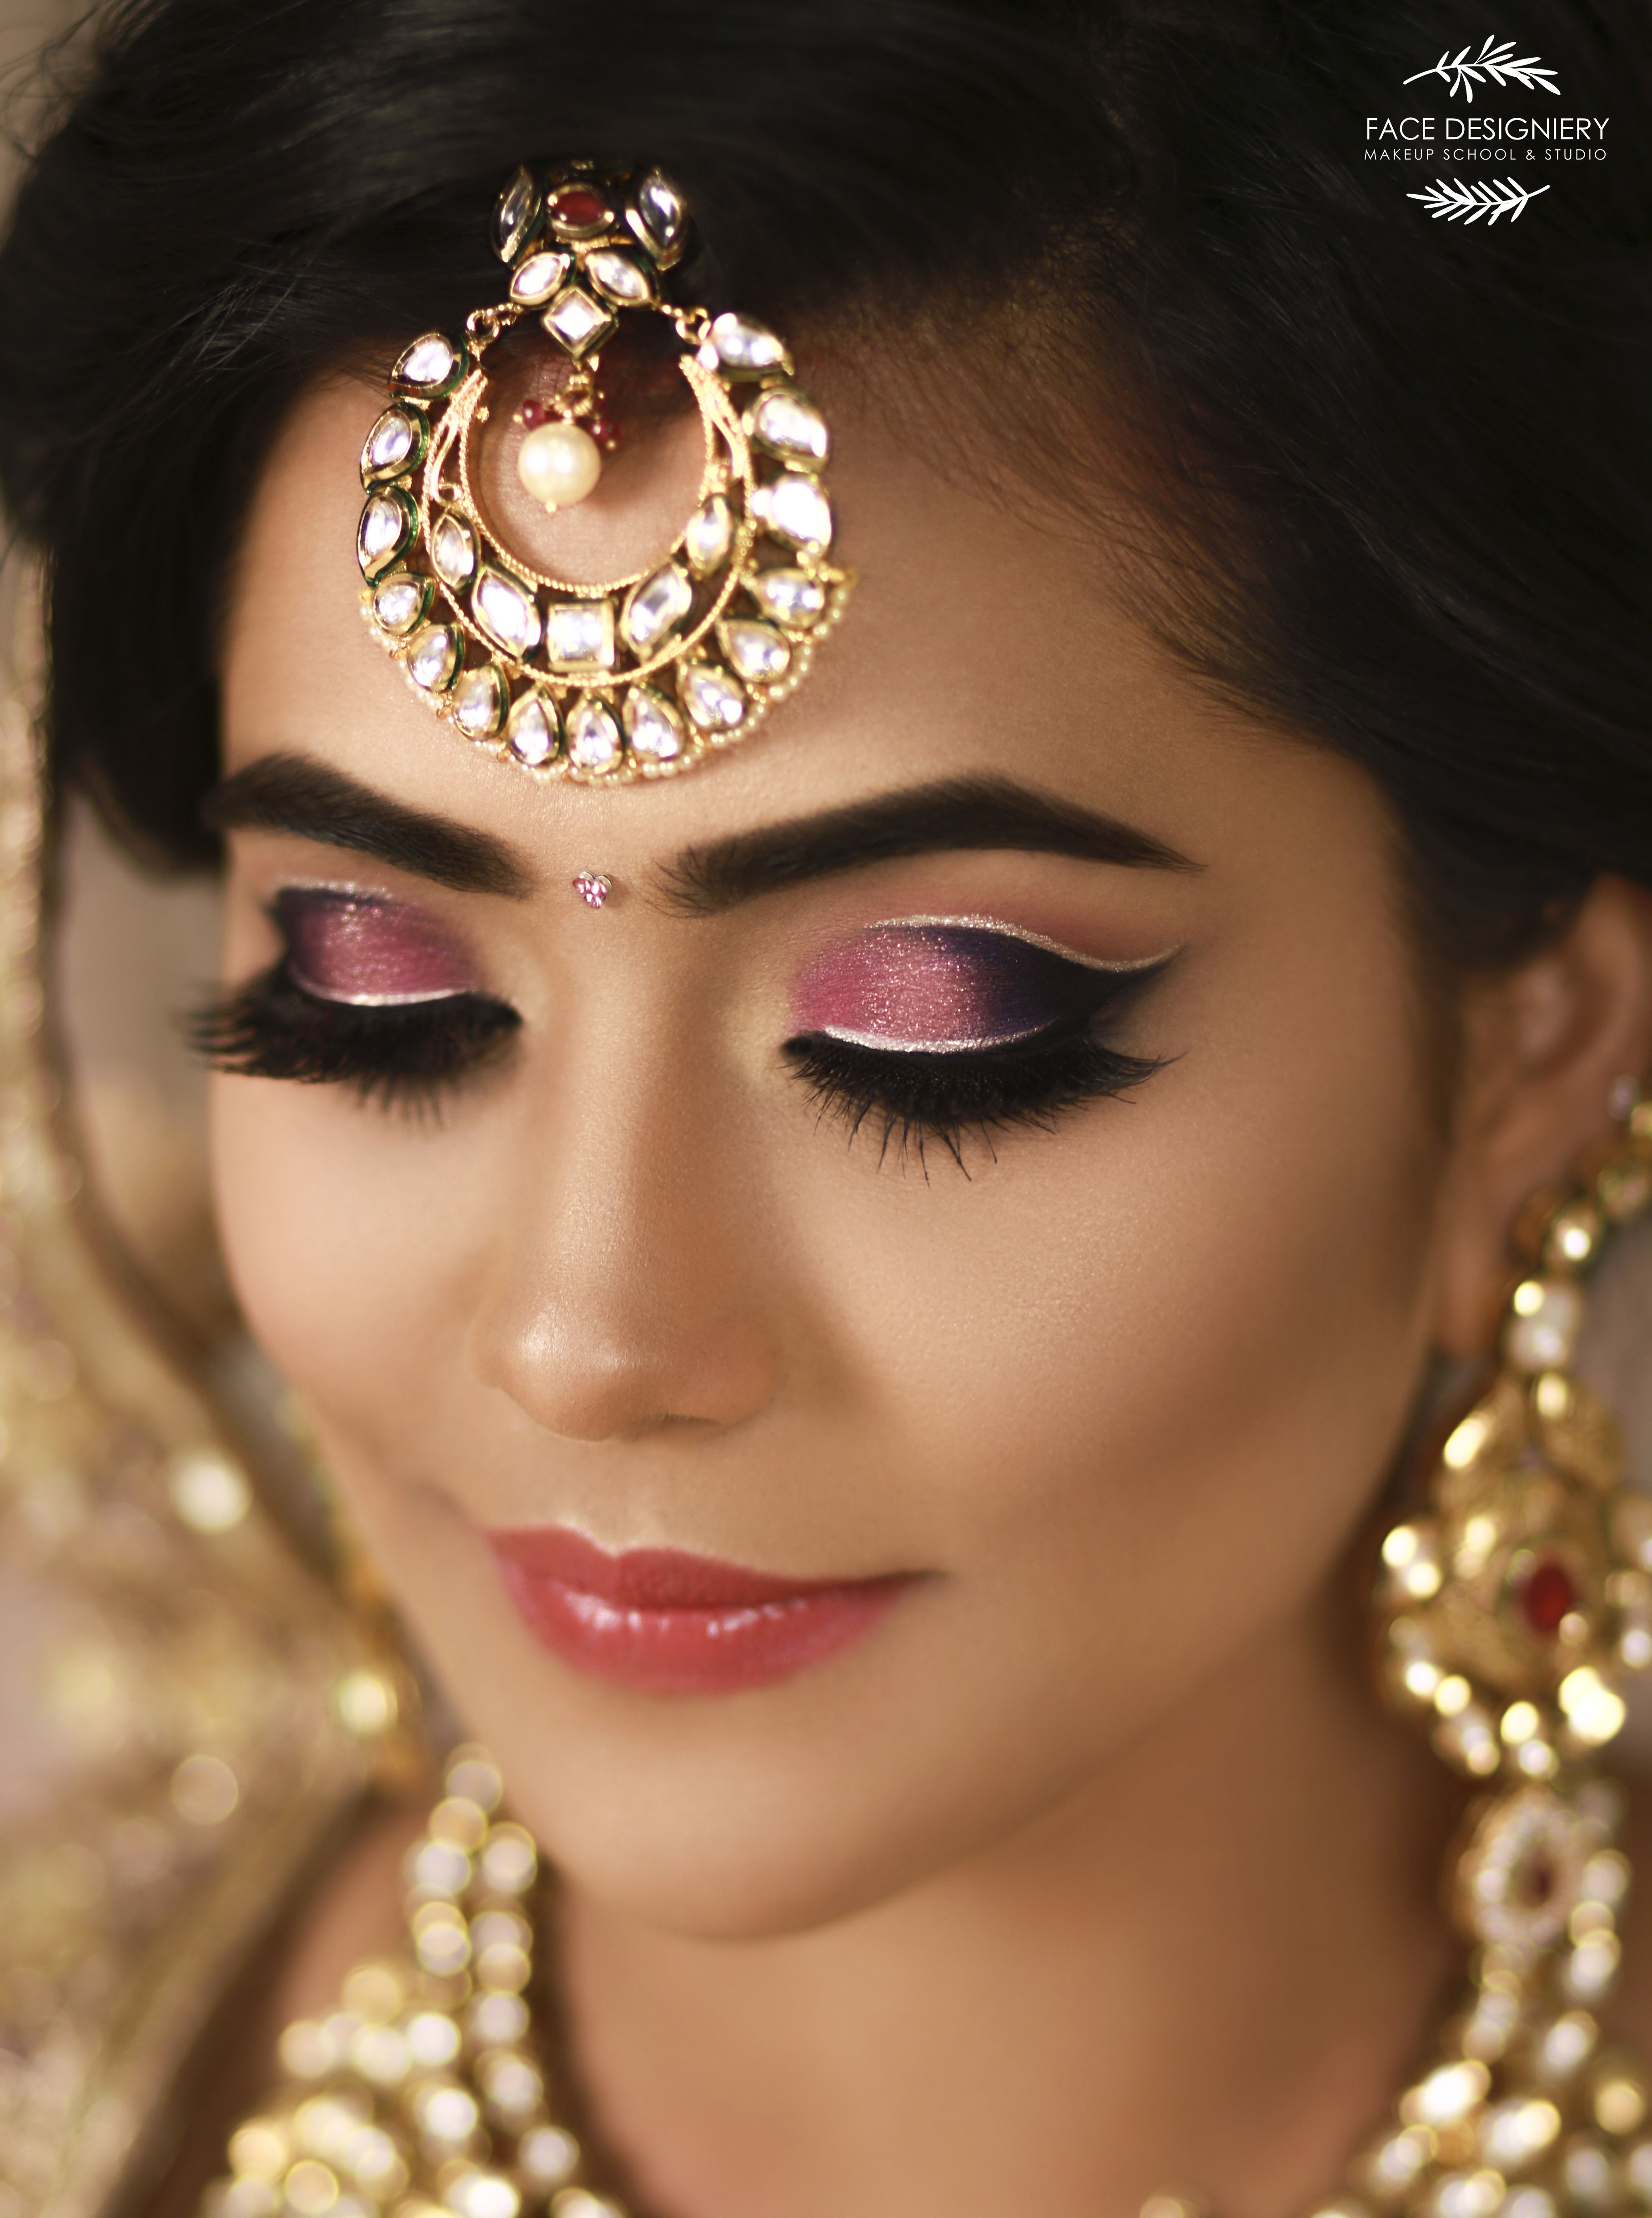 pin by shruti bhatt on shruti bhatt makeup artist | bridal